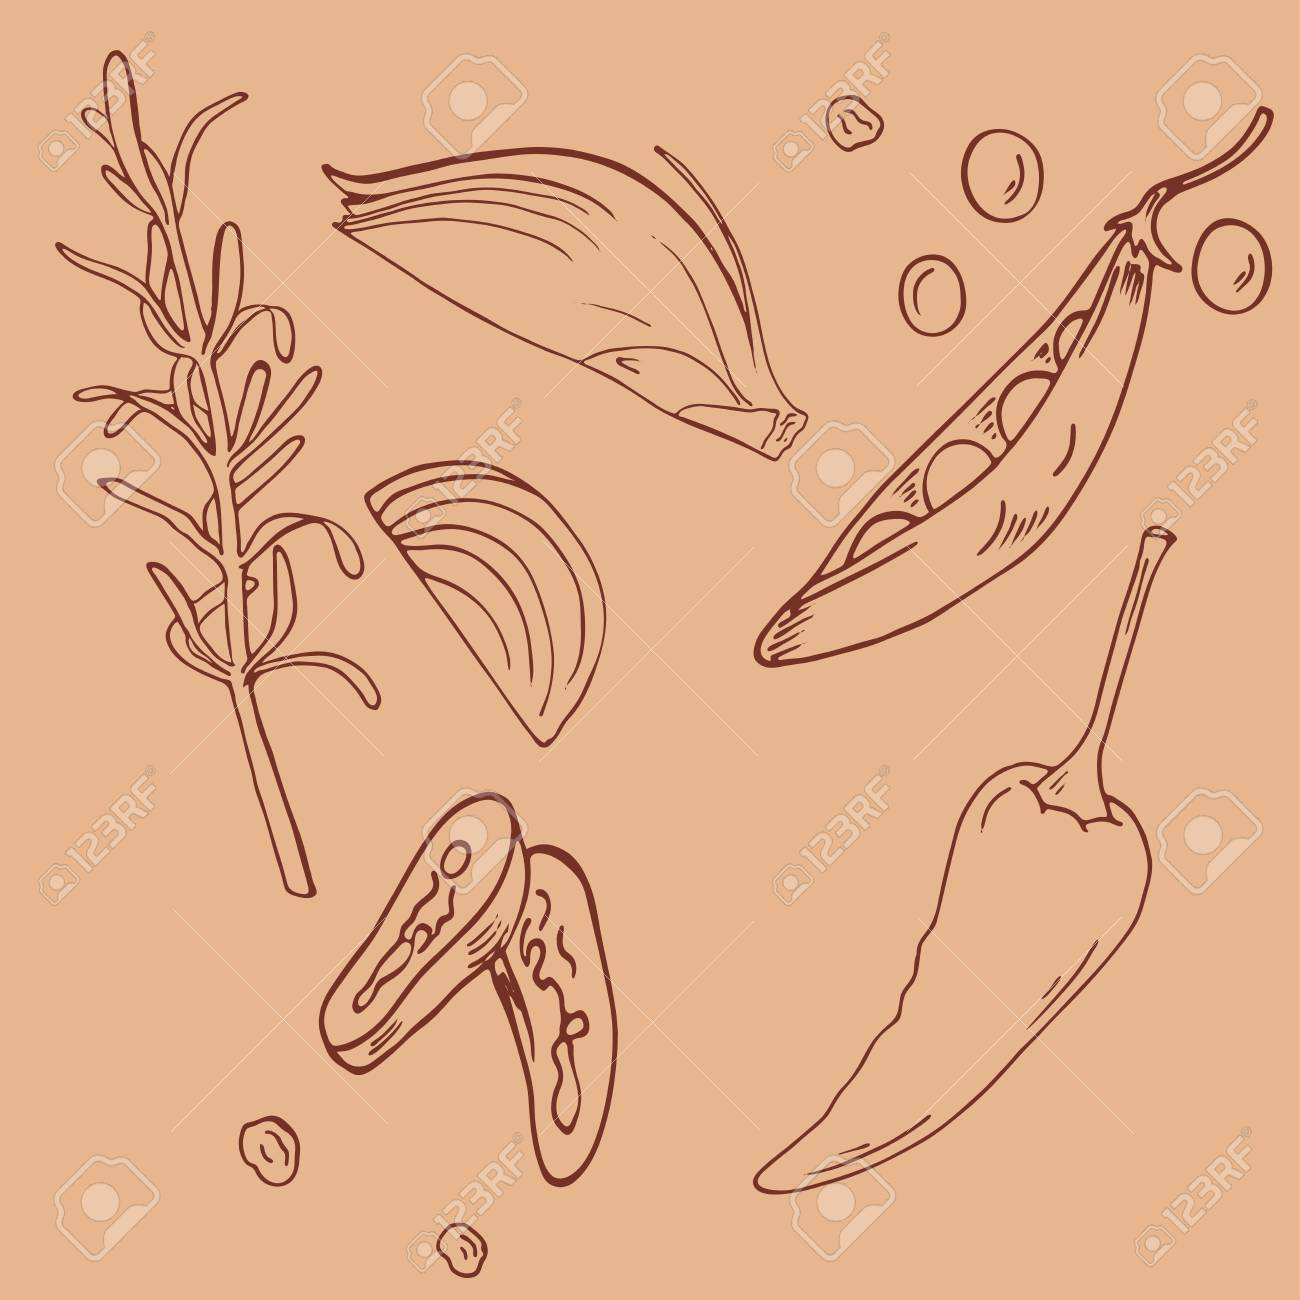 Set of fresh vegetables: onion, green pees, chili, rosemary isolated on beige background. hand drawn vector illustration. - 117187152